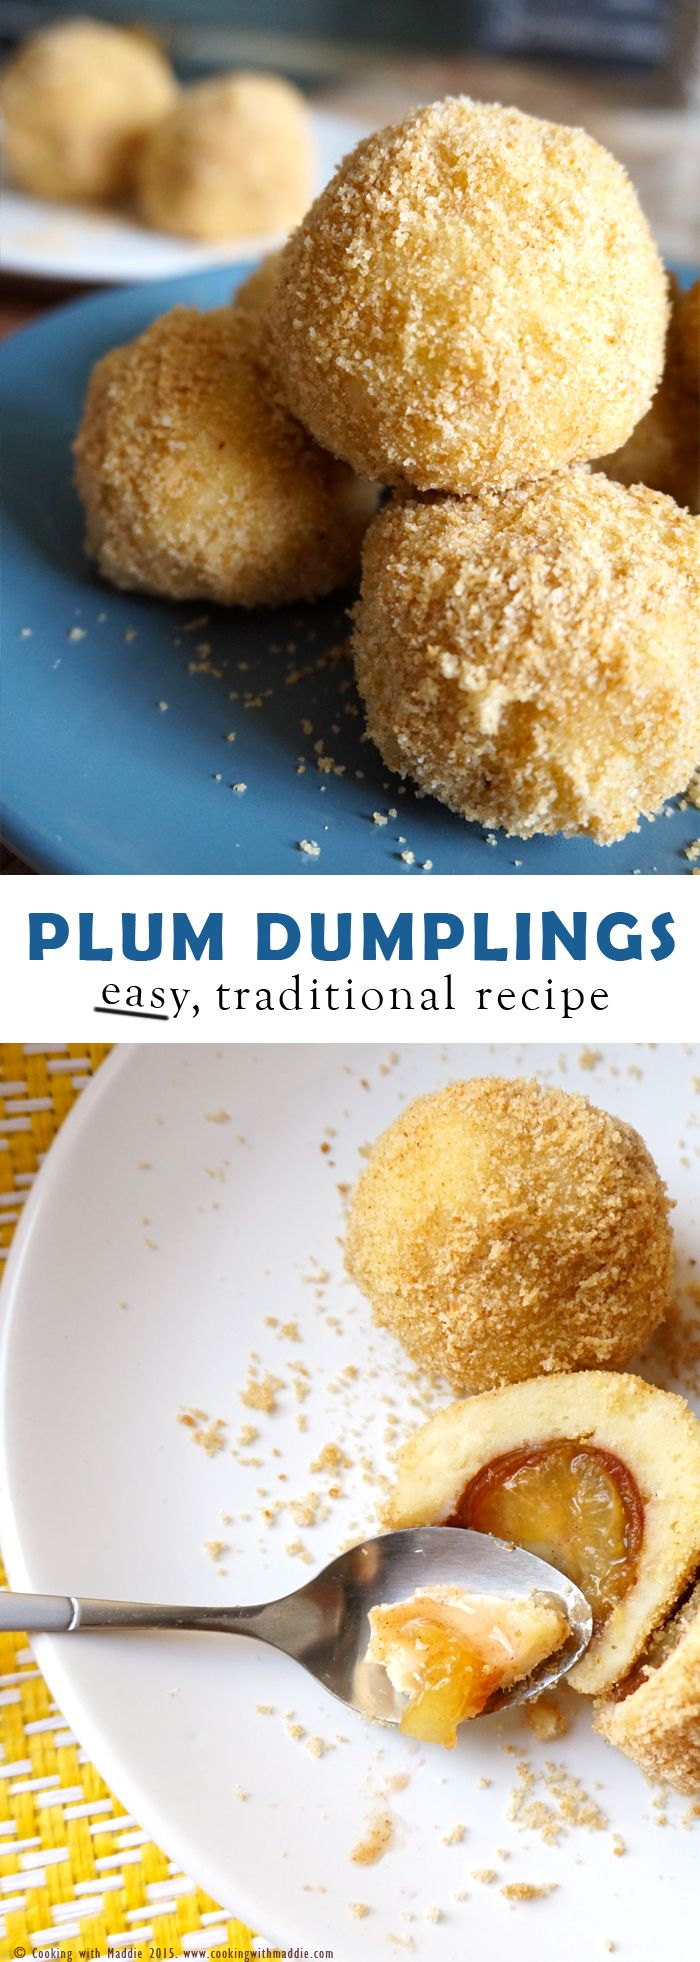 I love making these plum dumplings. The smell, the burst of warm aromas when you bite into them, the beautiful texture of the crumbs...they're so hard to resist!! @cookingwmaddie www.cookingwithmaddie.com